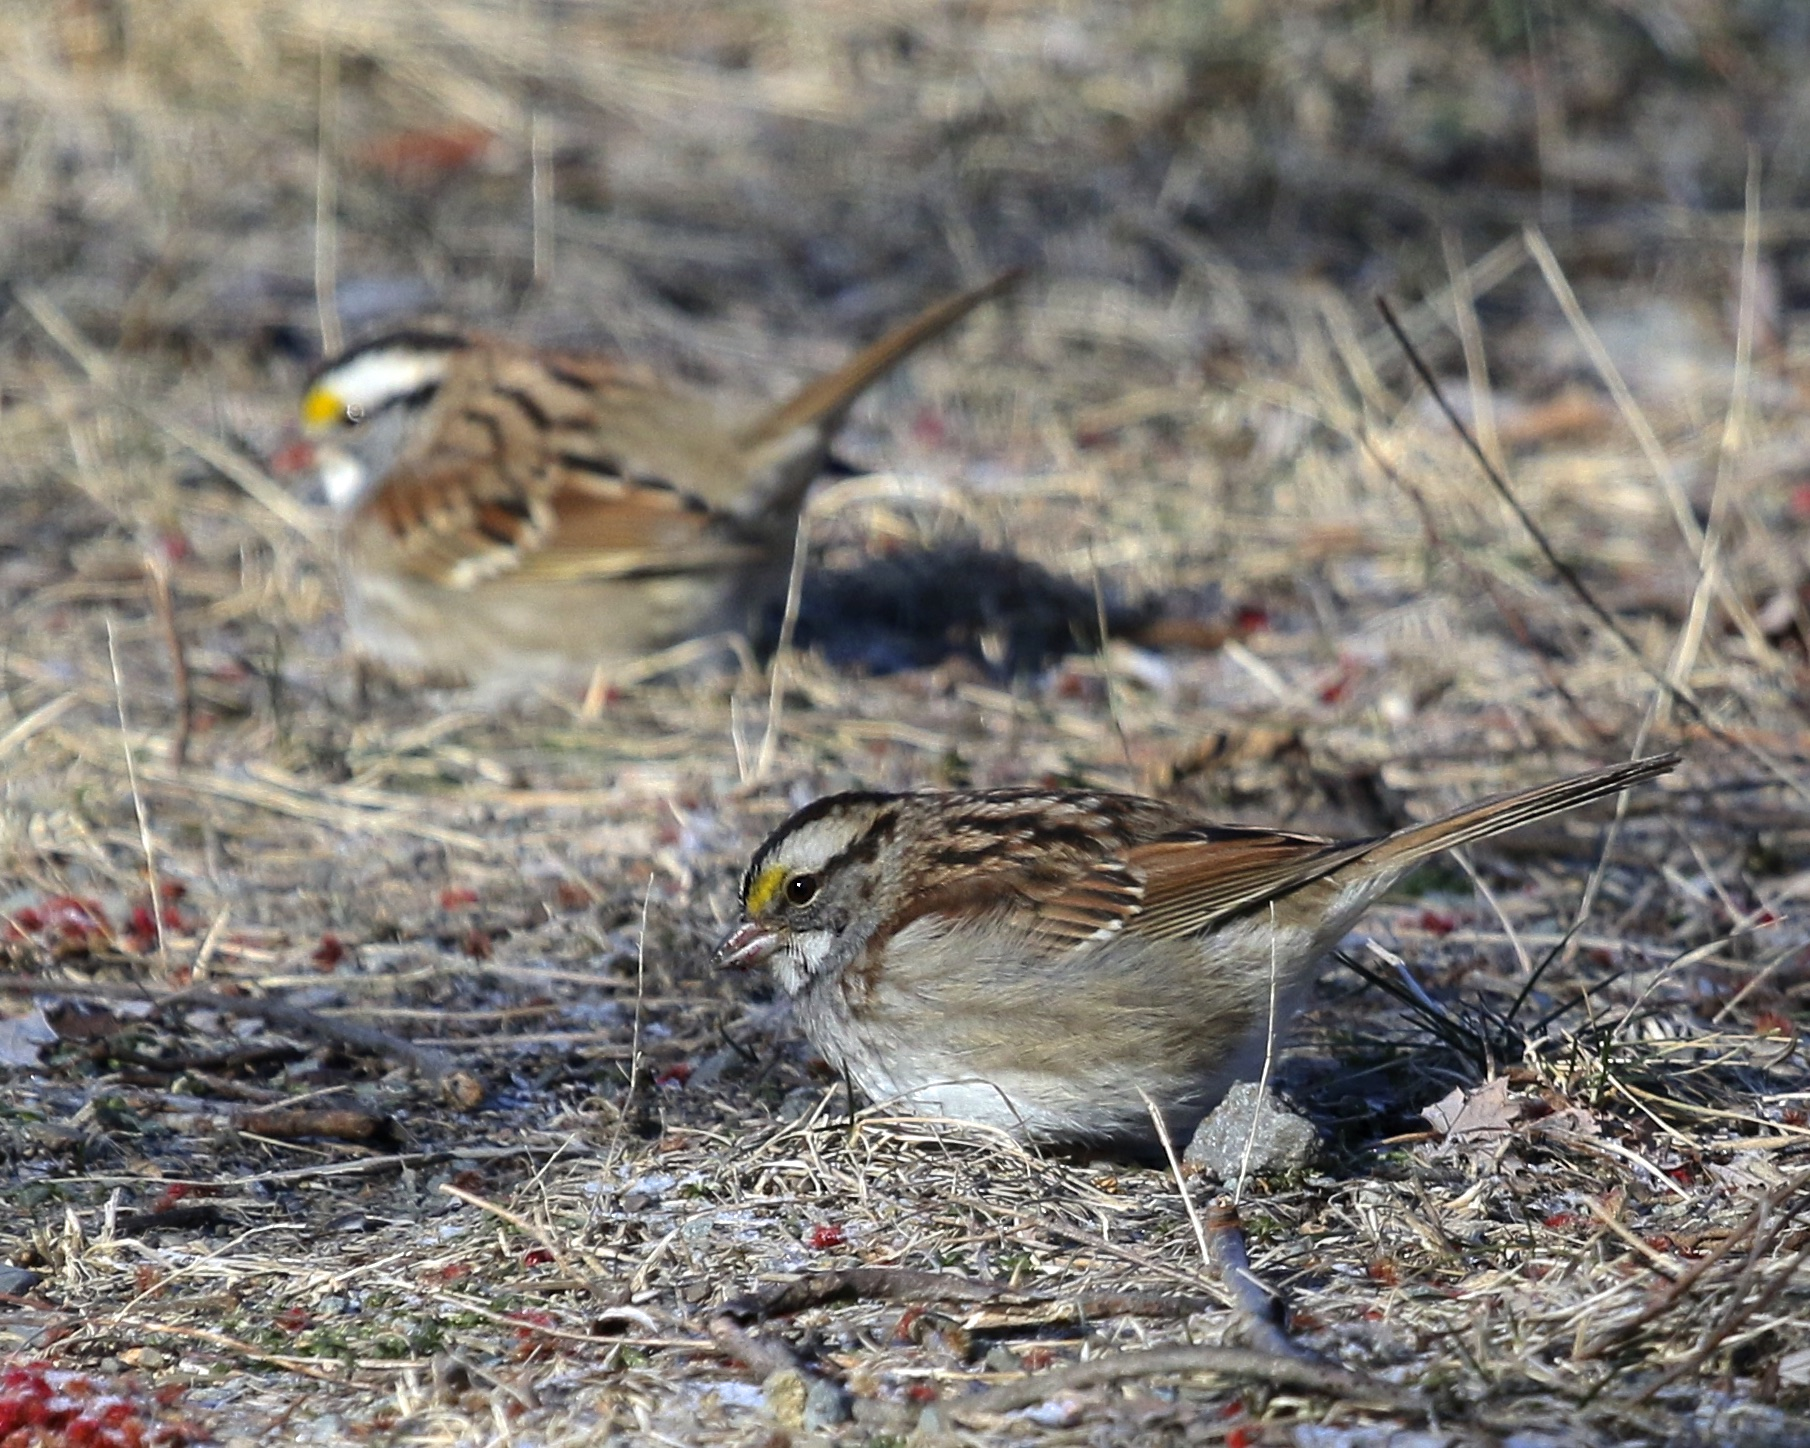 A pair of White-throated Sparrows forage on the trail in front of me at 6 1/2 Station Road Sanctuary, 2/14/16.~